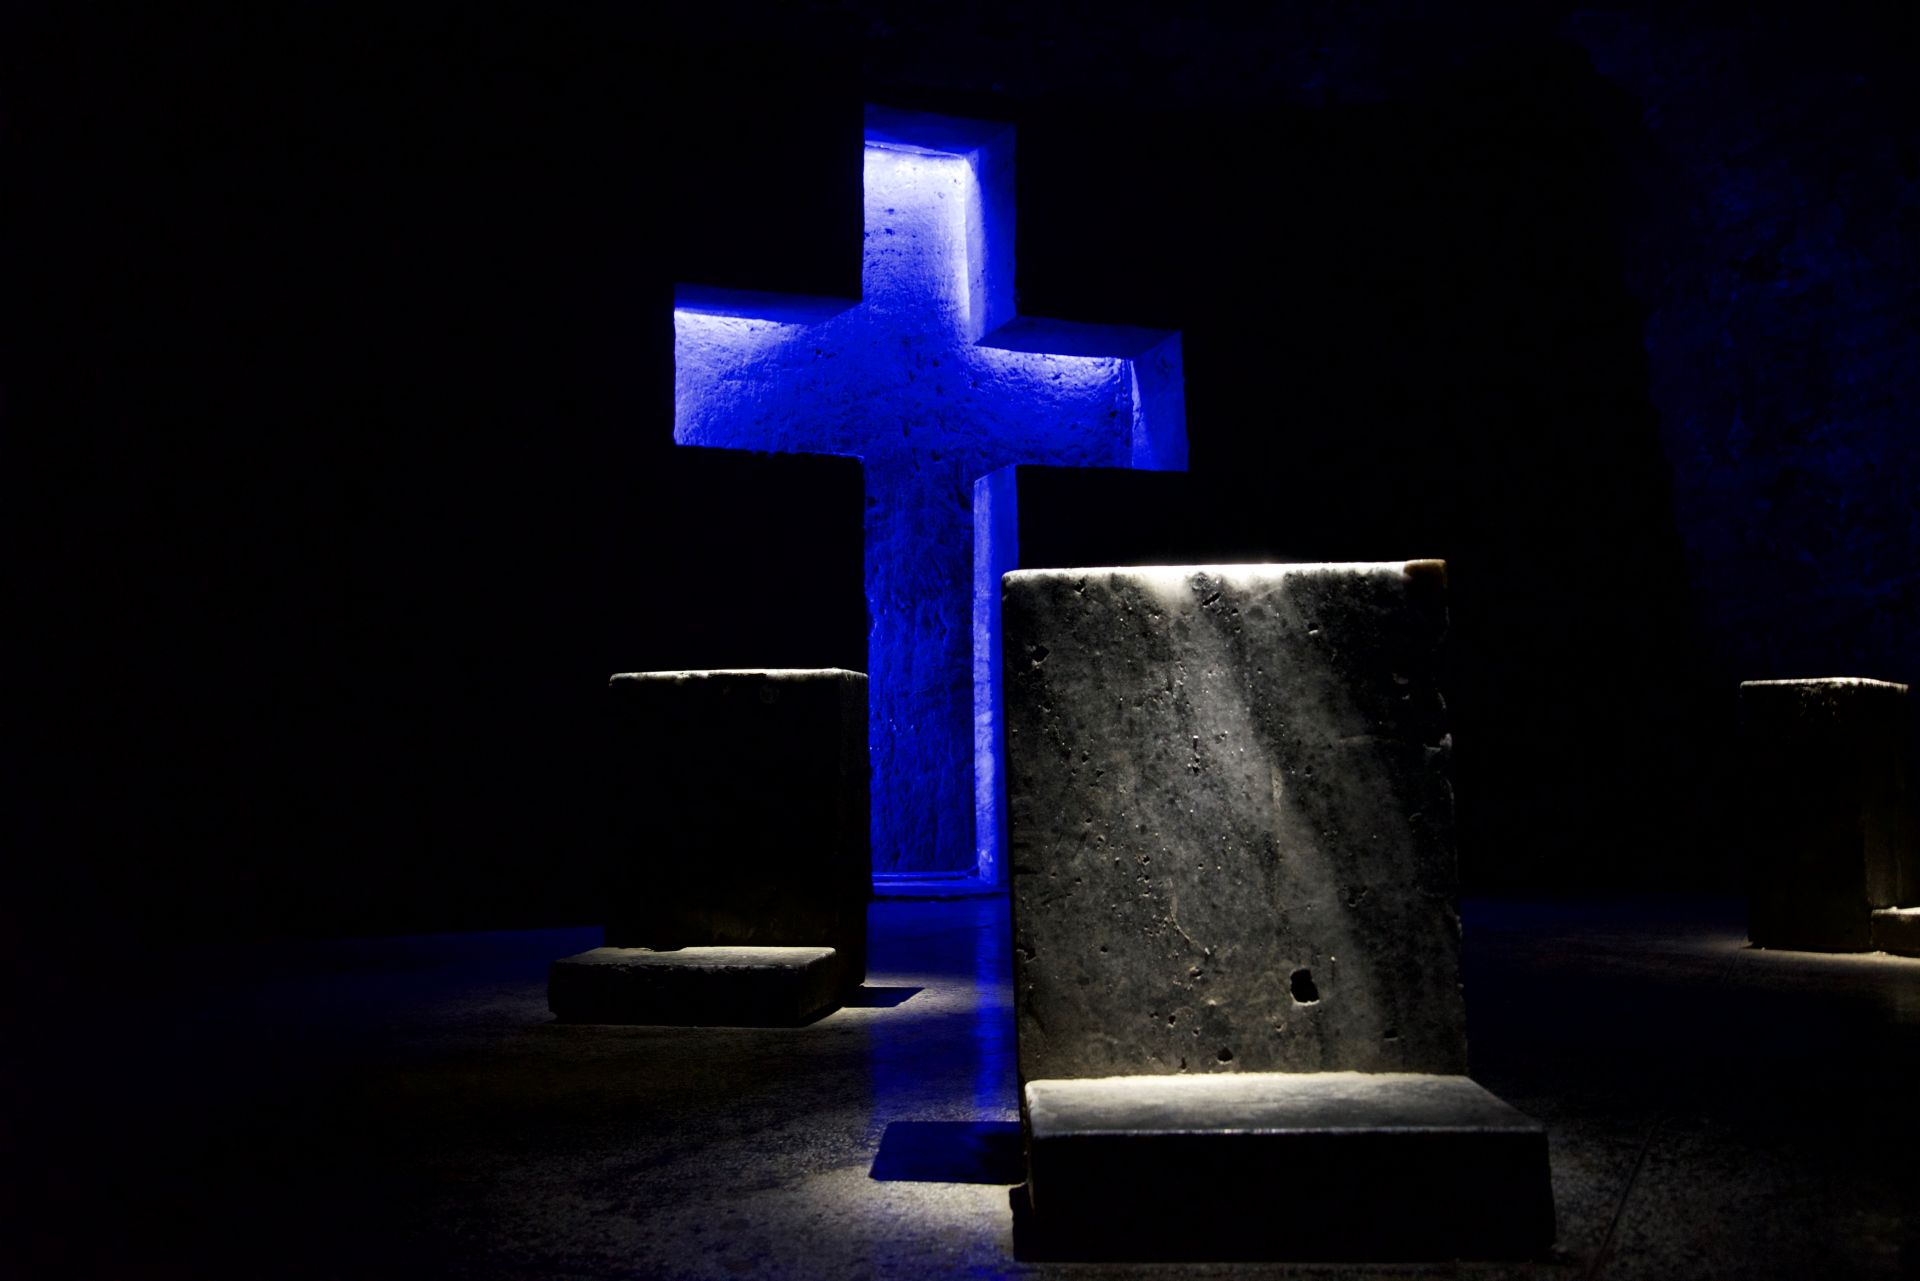 cross, cathedral, will, sign of faith, light, make, beam of light, blue, stone